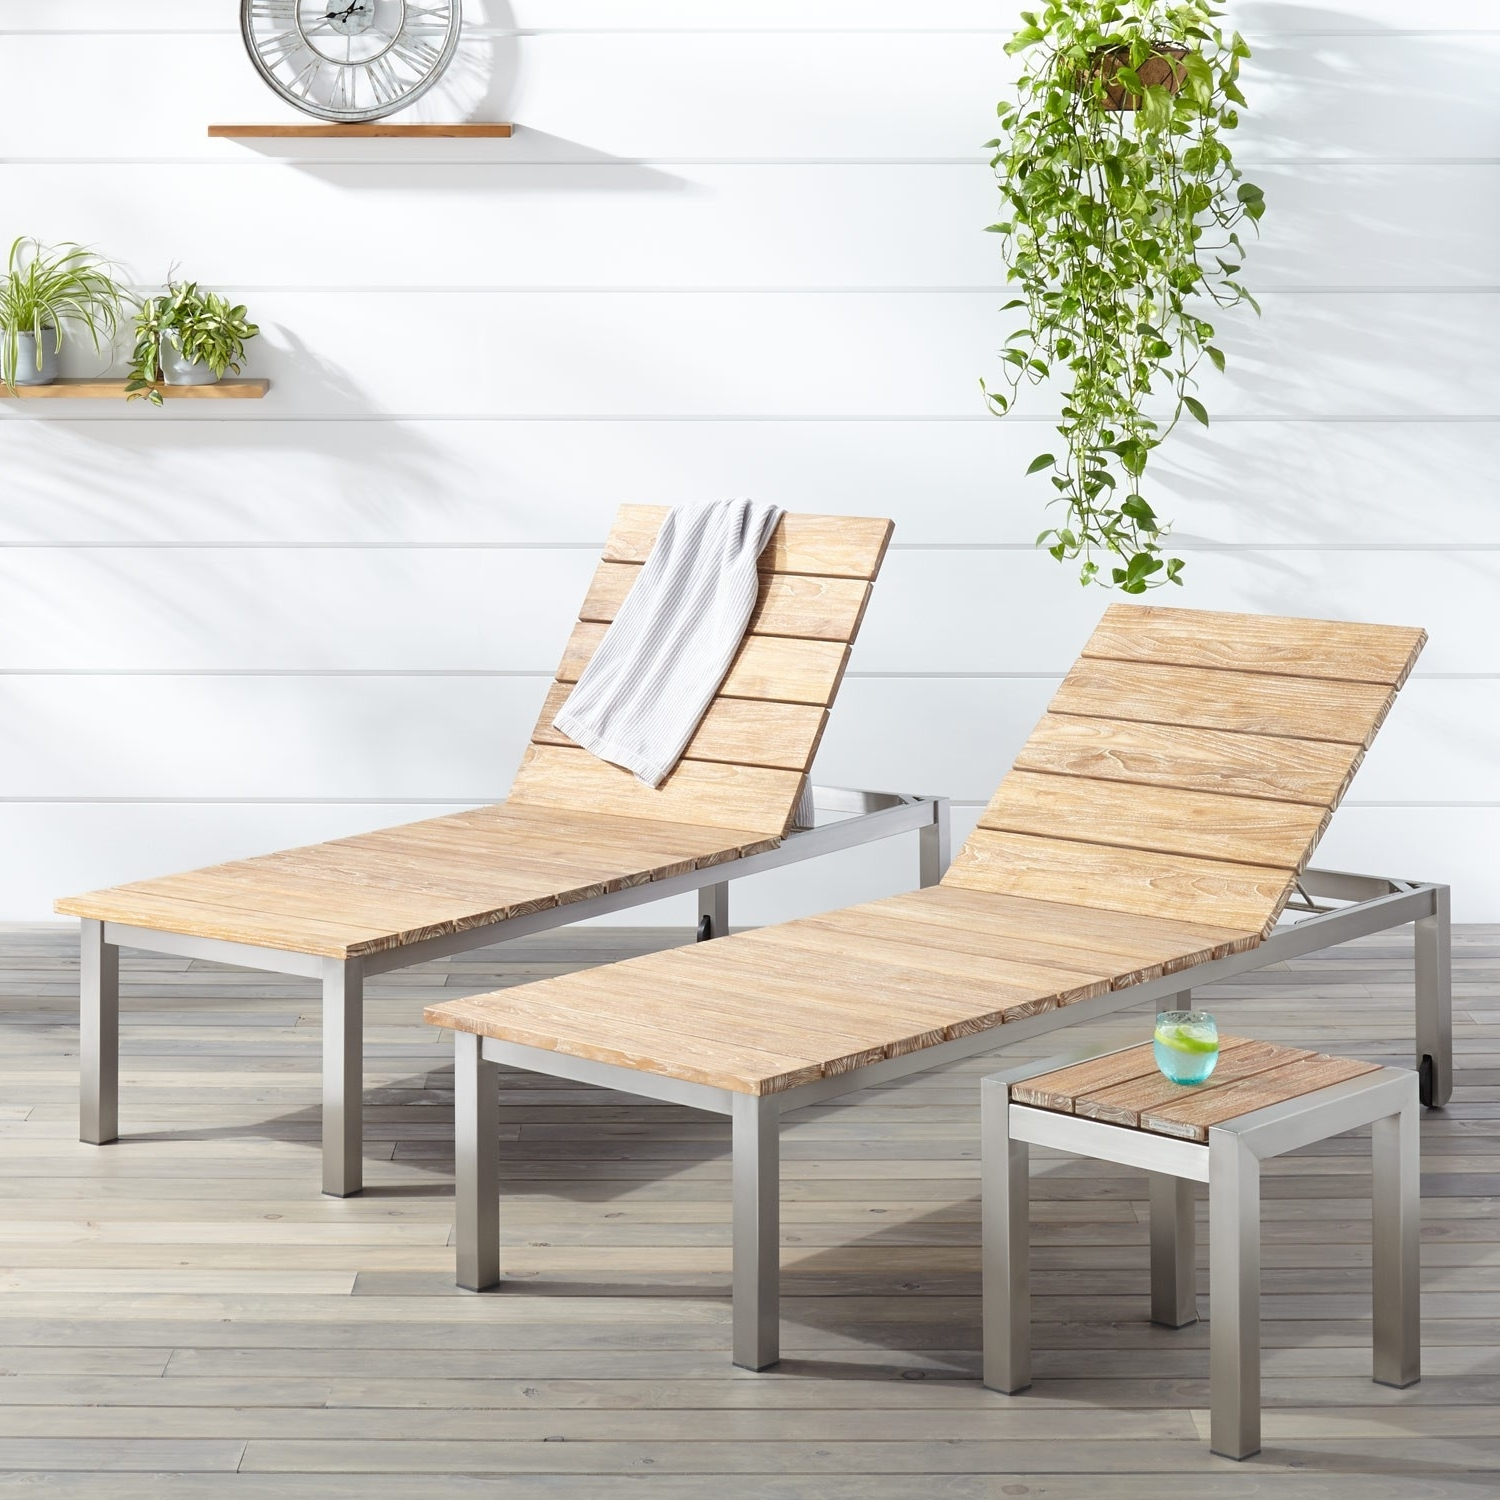 Outdoor Chaise Lounges Intended For Most Current Macon 3 Piece Teak Outdoor Chaise Lounge Chair Set – Whitewash (View 6 of 15)